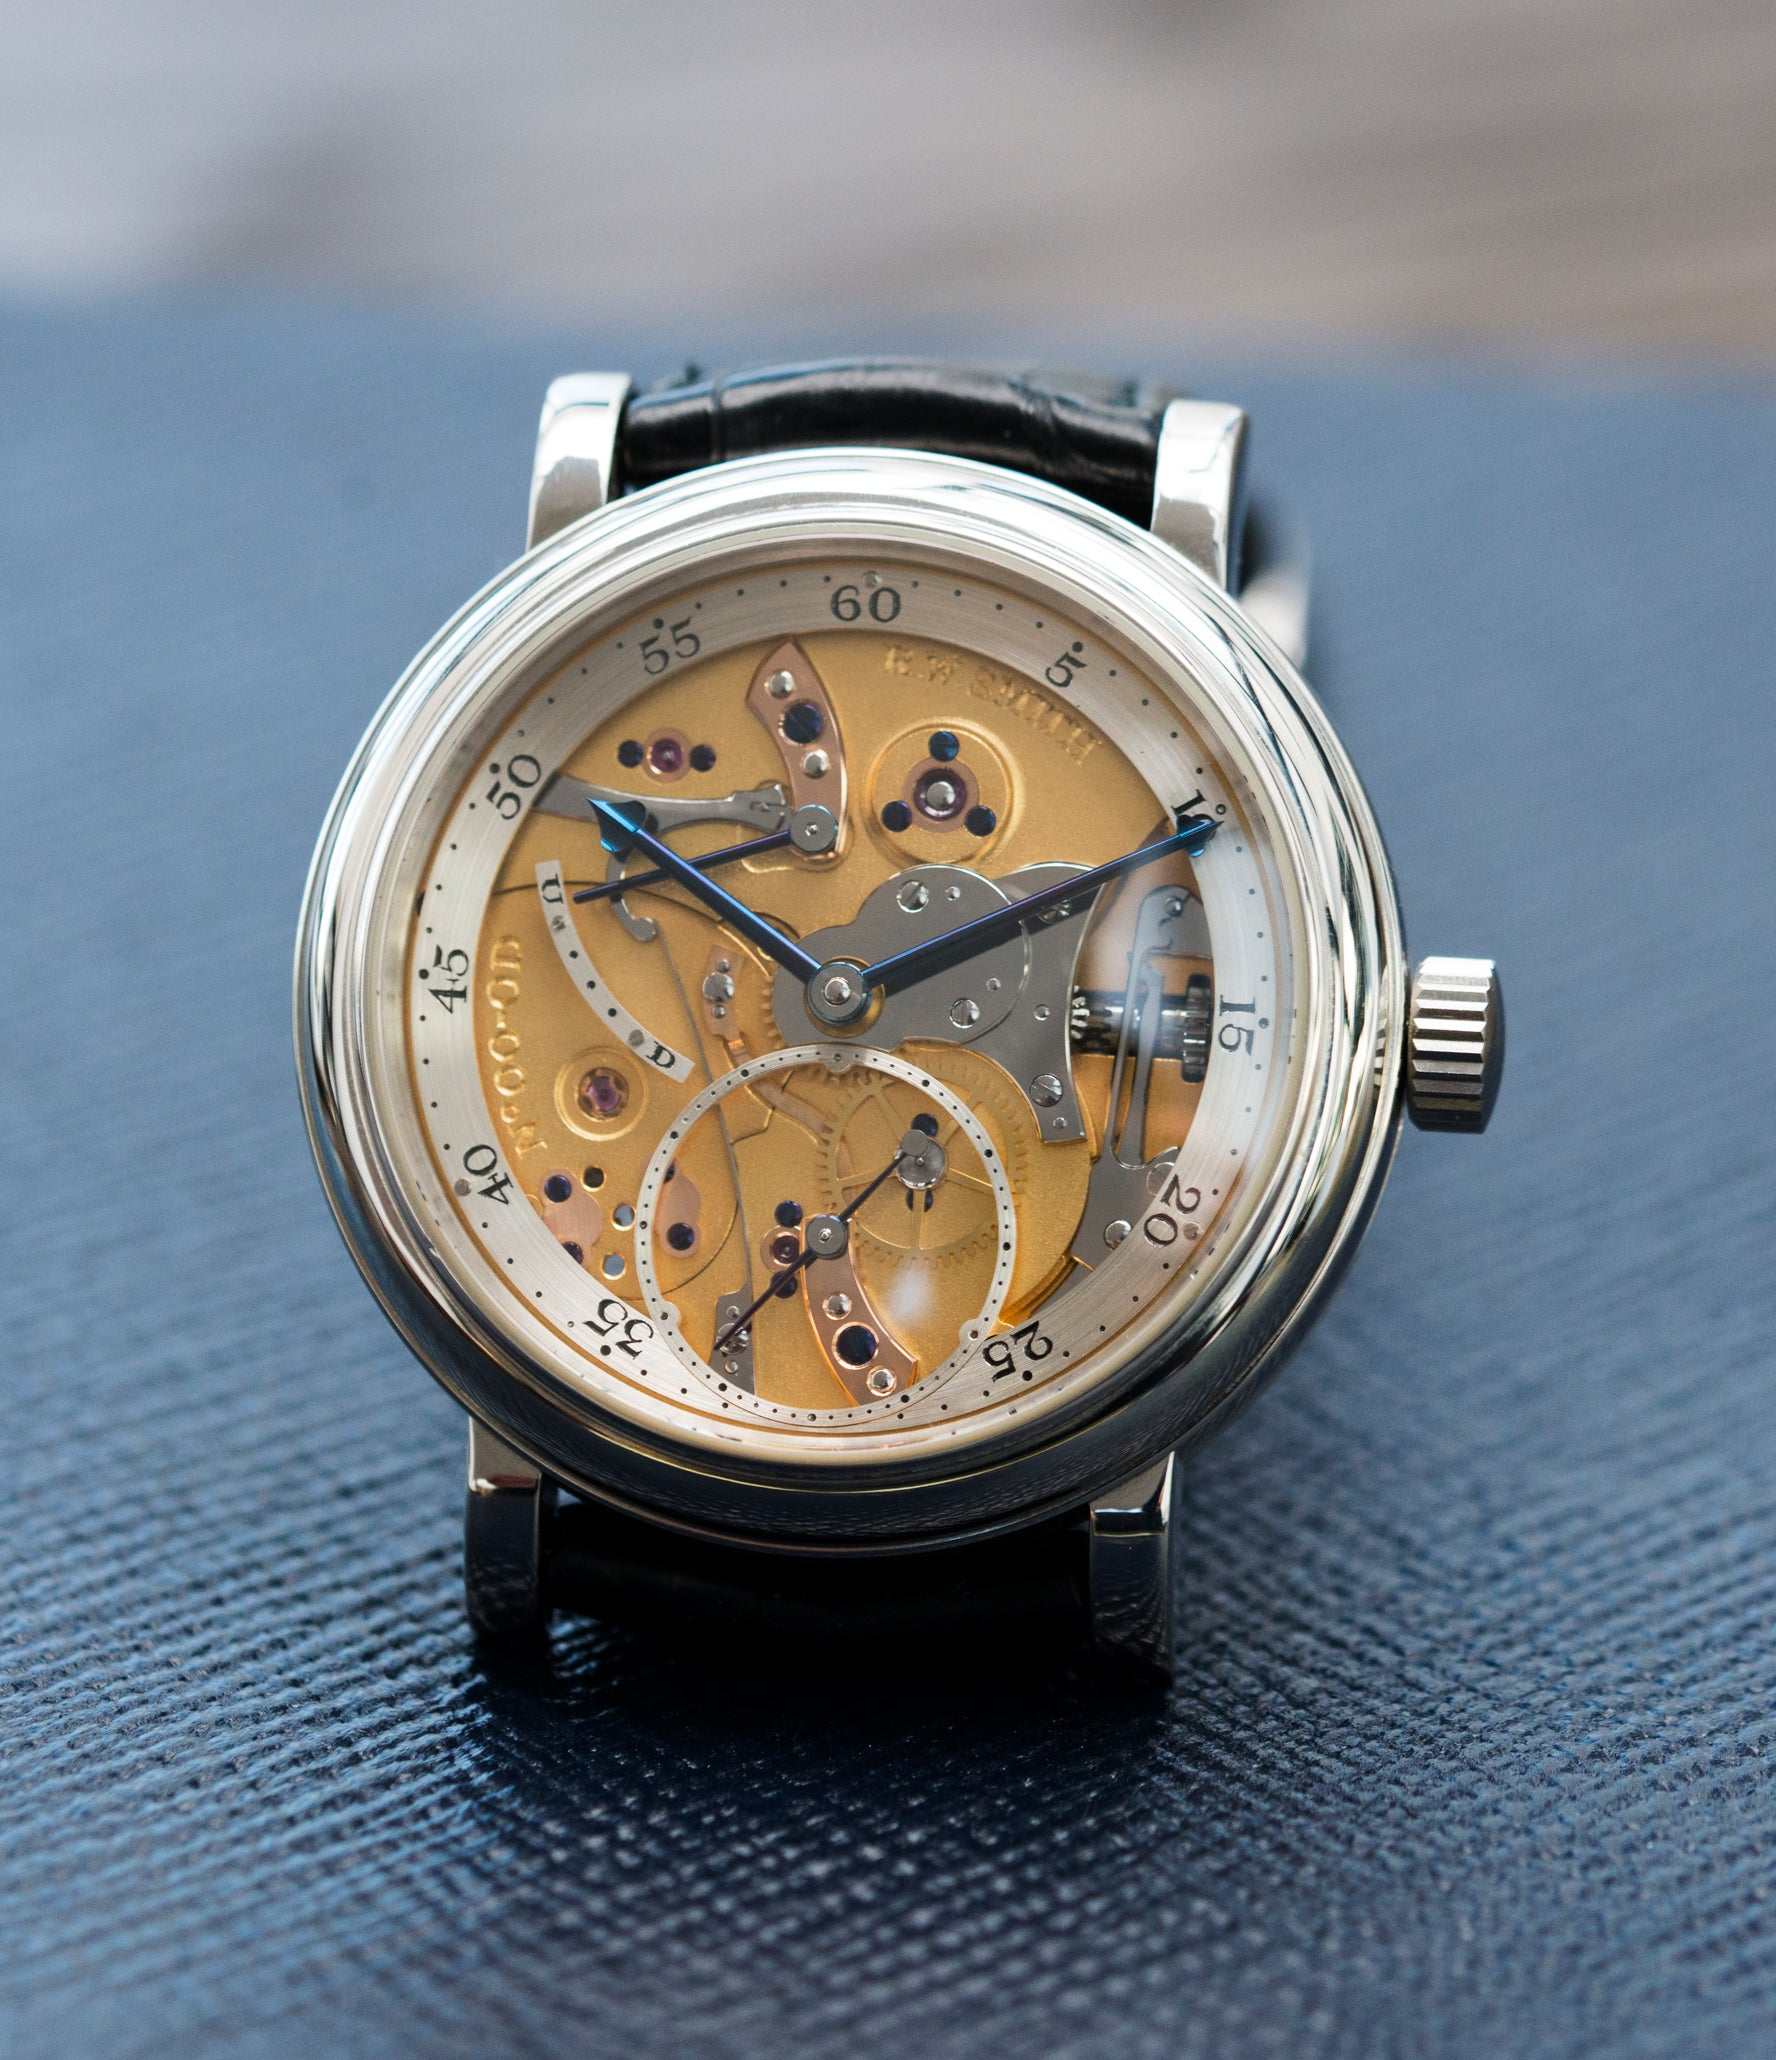 selling Roger W. Smith Series 2 Open dial rare dress platinum watch for sale online at A Collected Man London UK approved seller of independent watchmakers